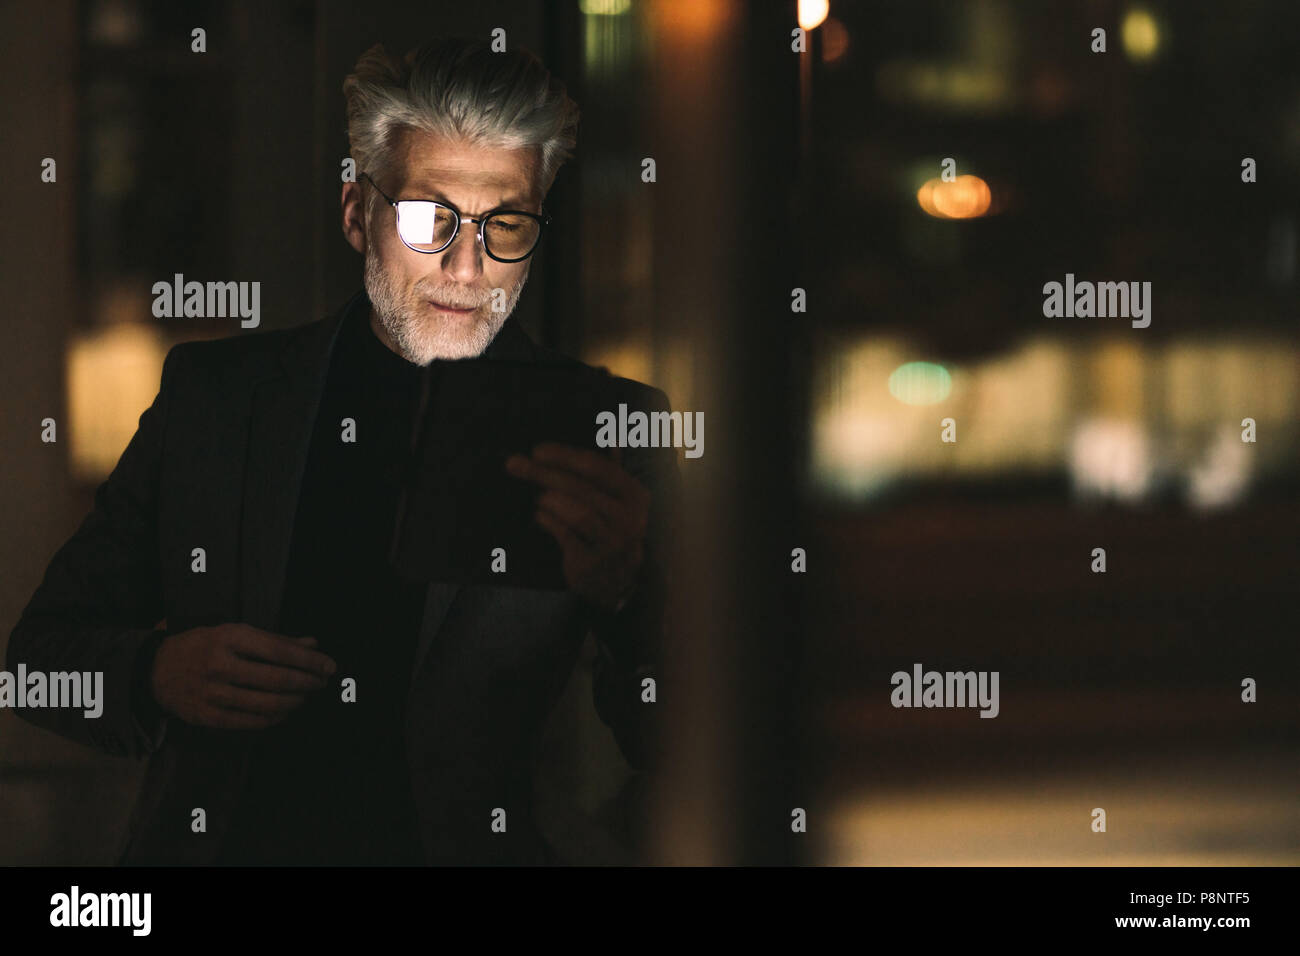 Senior businessman looking at digital tablet in office. Mature man during late working hours in office. - Stock Image